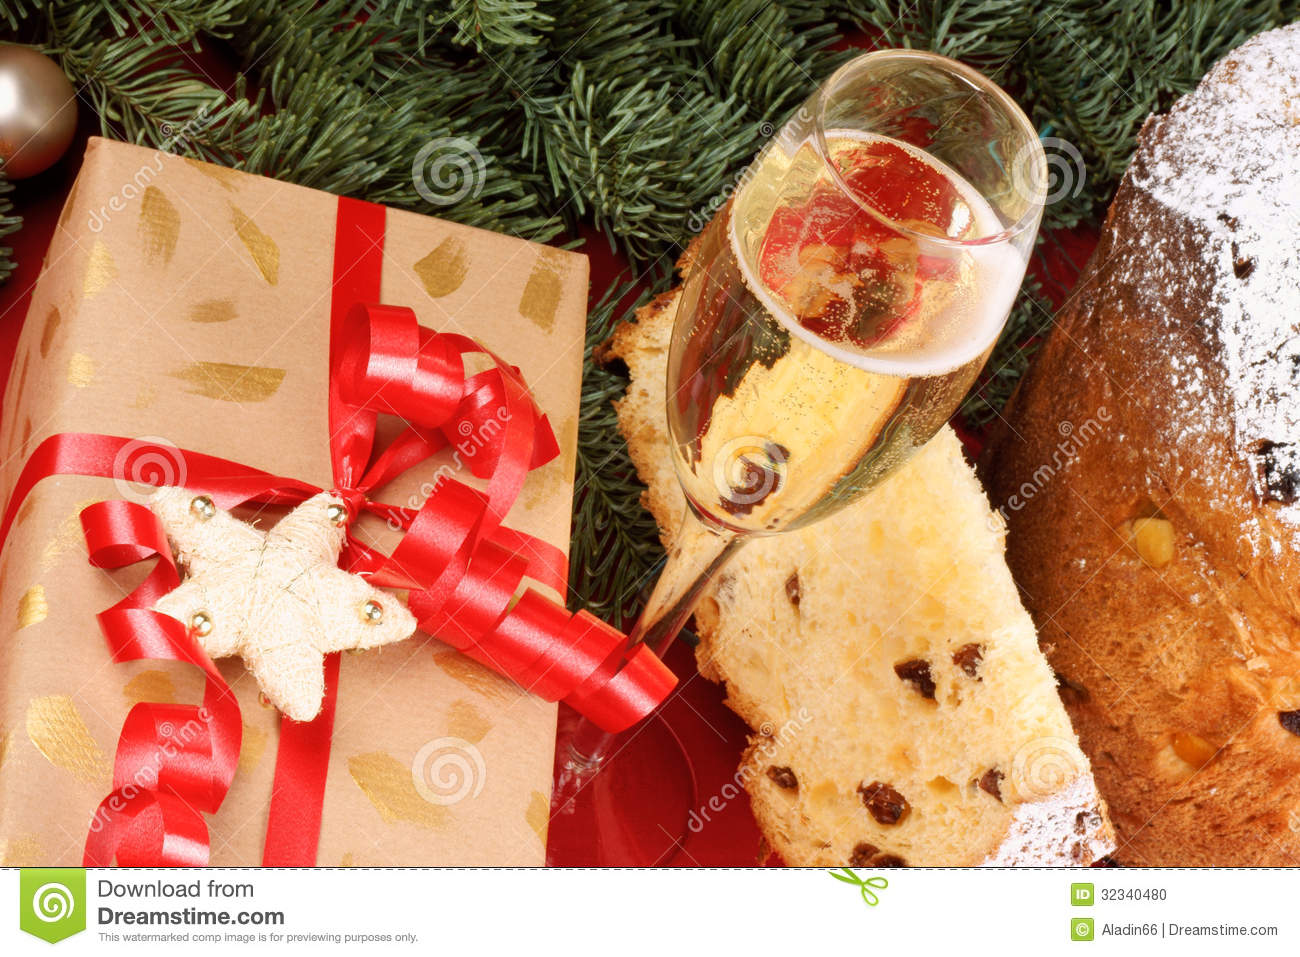 panettone and spumante the italian christmas tradition - Italian Christmas Traditions